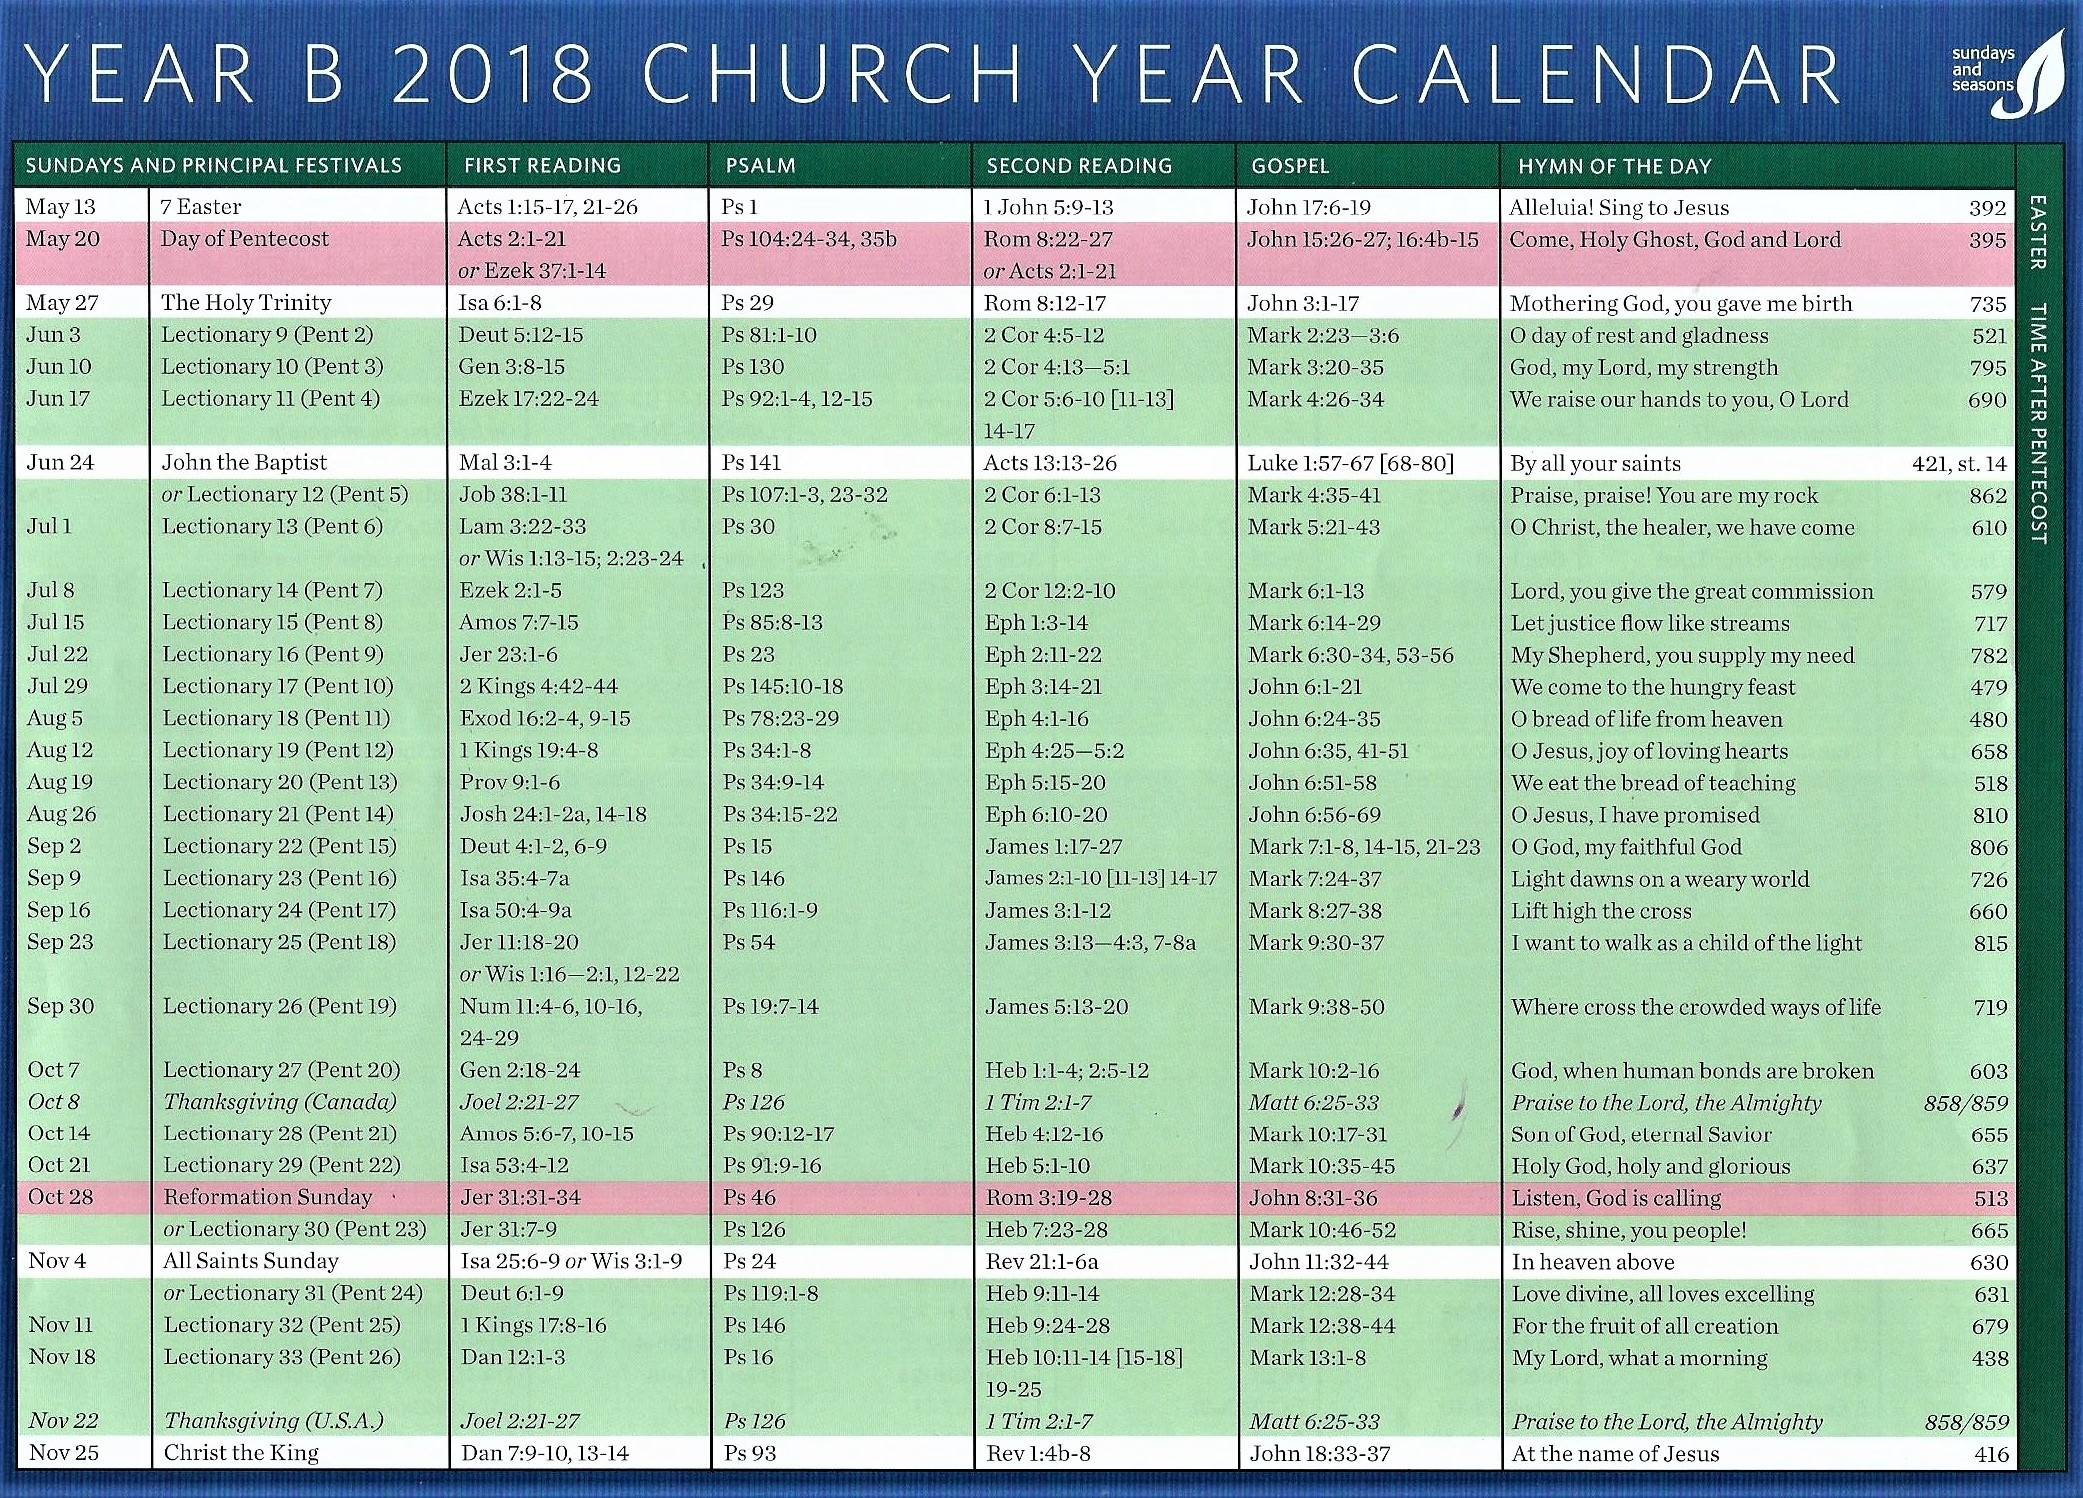 Year C 2019 Church Calendar With 2018 MAY NOV St Paul S Evangelical Lutheran